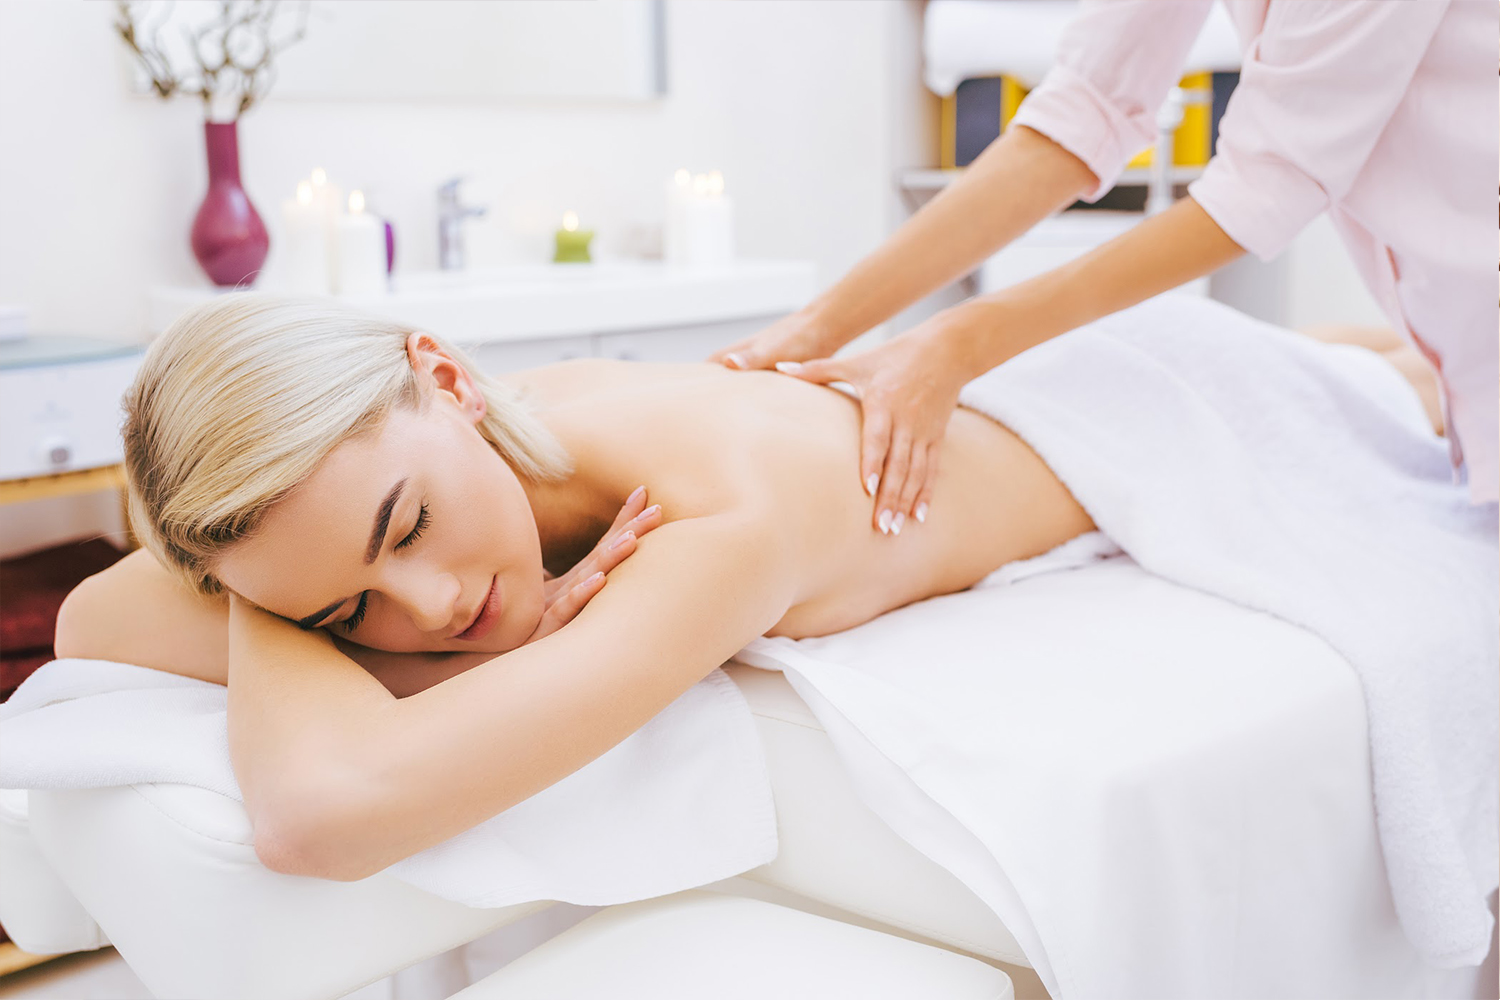 The Glam Room Has the Perfect Massage for You